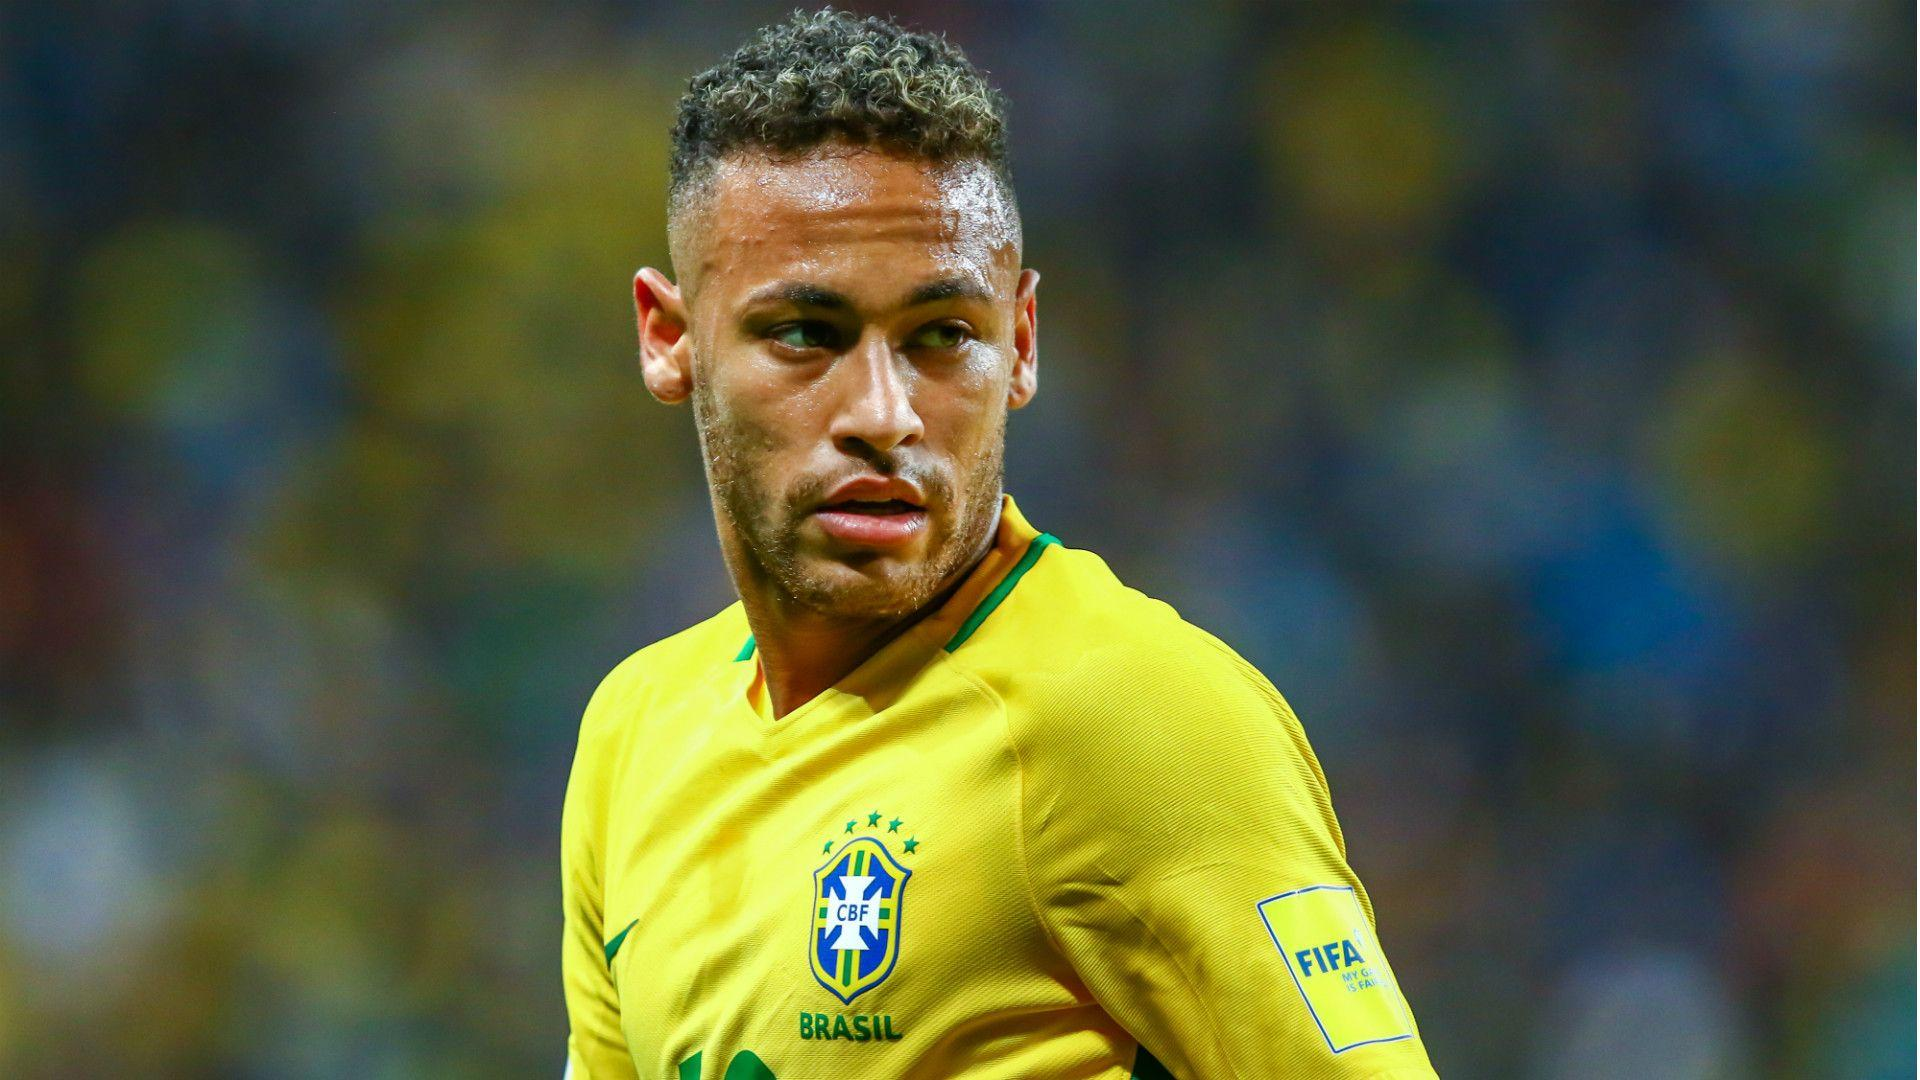 Neymar-Brazil-Wallpaper-2018-HDneymar-brazil-wallpaper-2018-hd ...